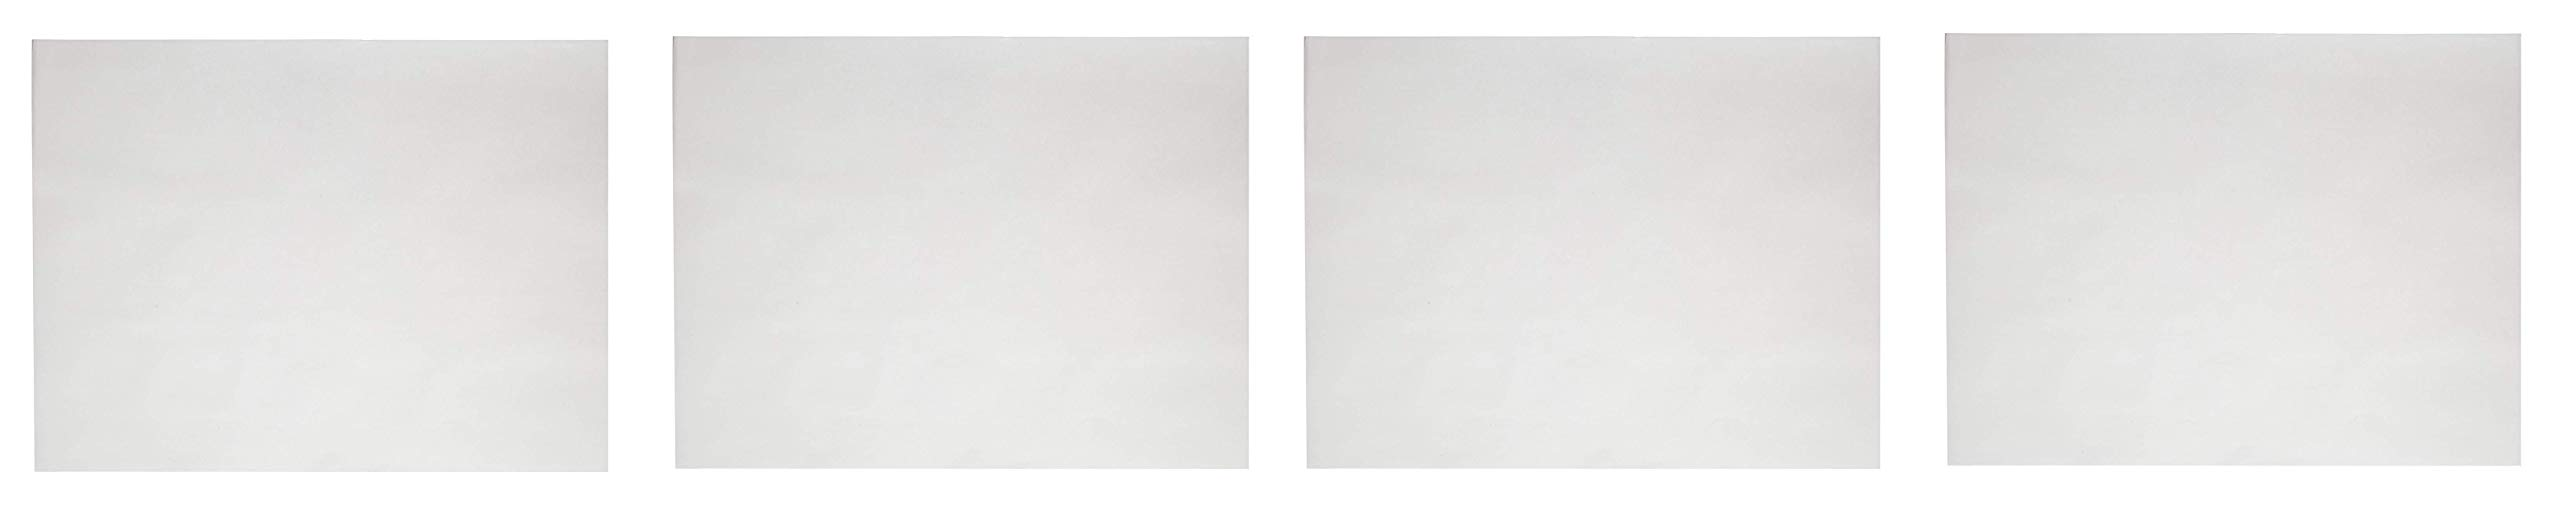 Sax Sulphite Drawing Paper, 70 lb, 18 x 24 Inches, Extra-White, Pack of 500 (4-Pack)